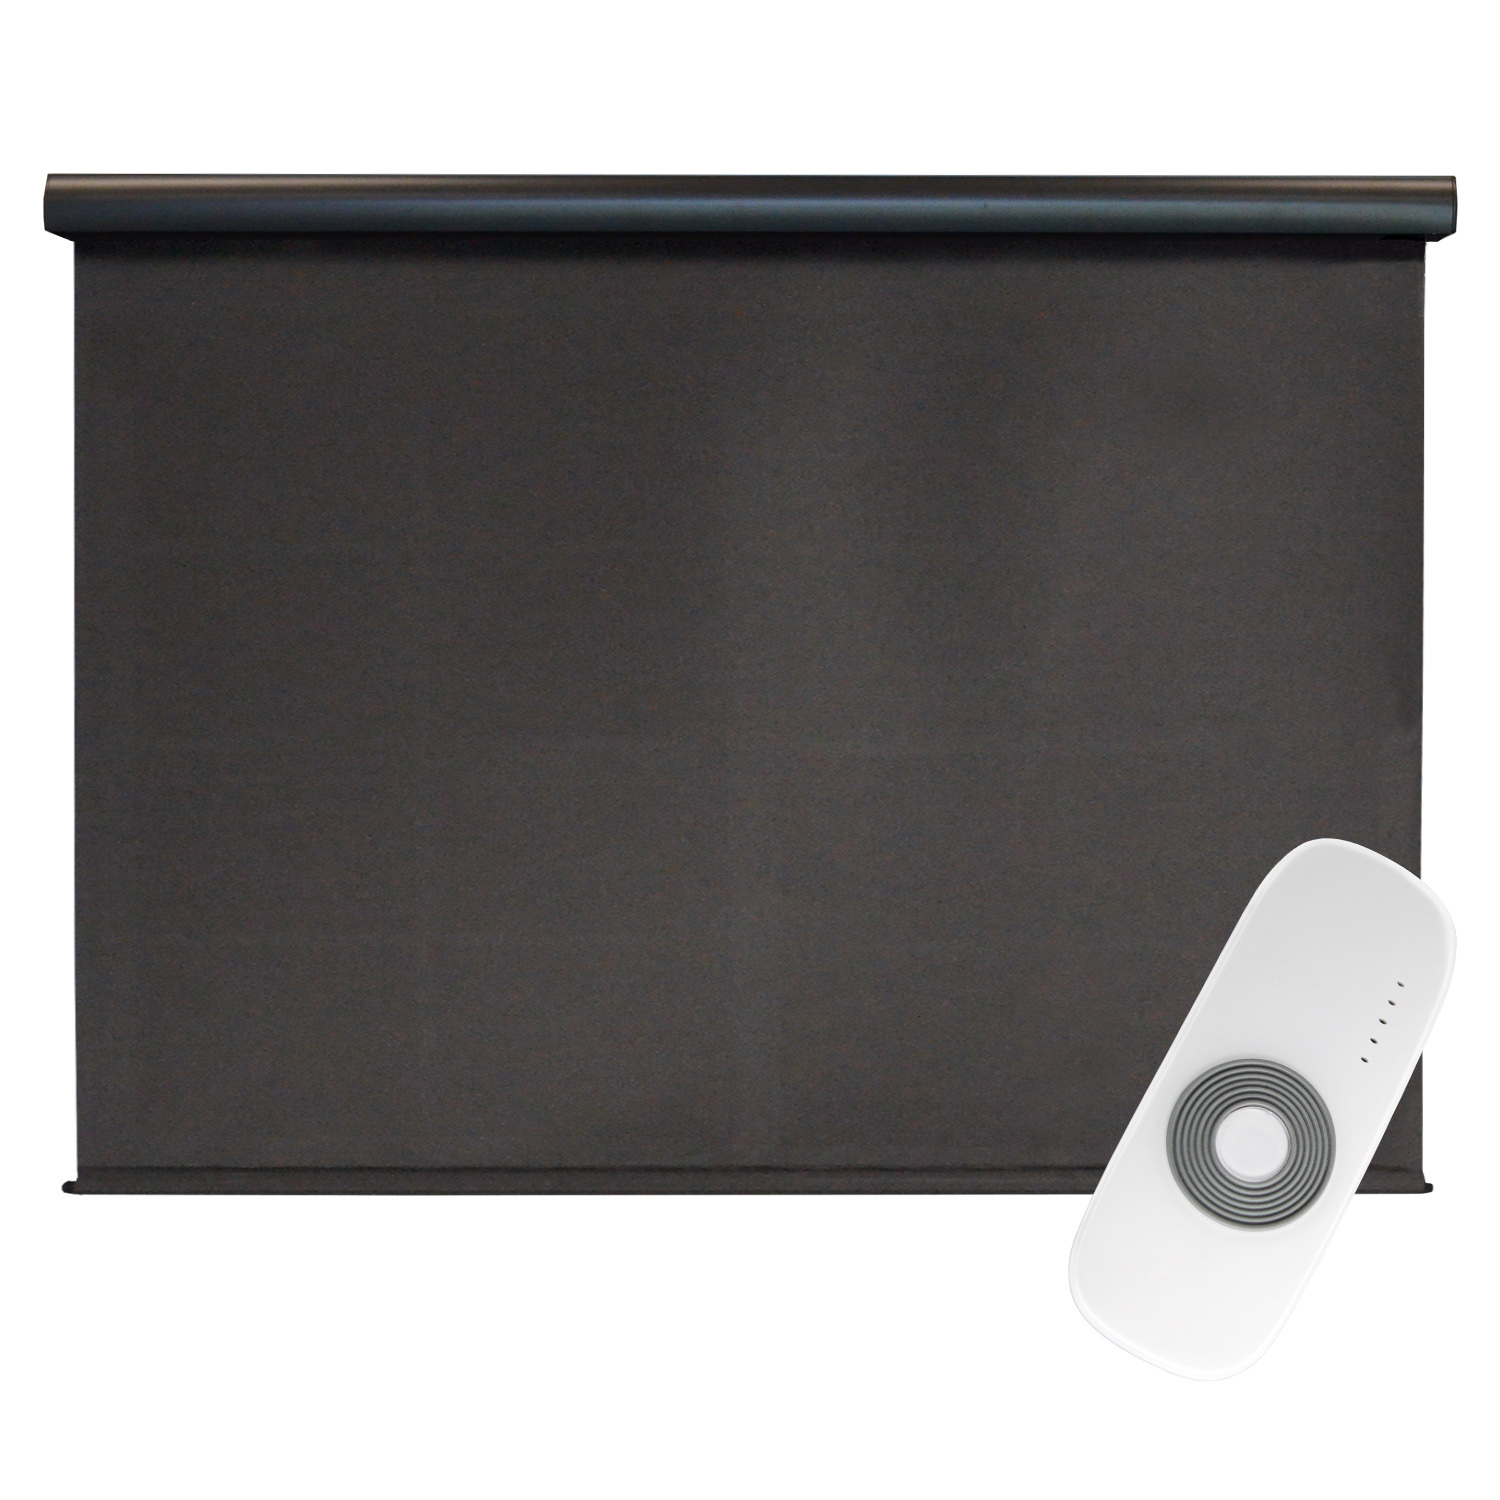 Premier Rechargeable Motorized Outdoor Sun Shade with Protective Valance, 4' W x 8' L, Mahogany